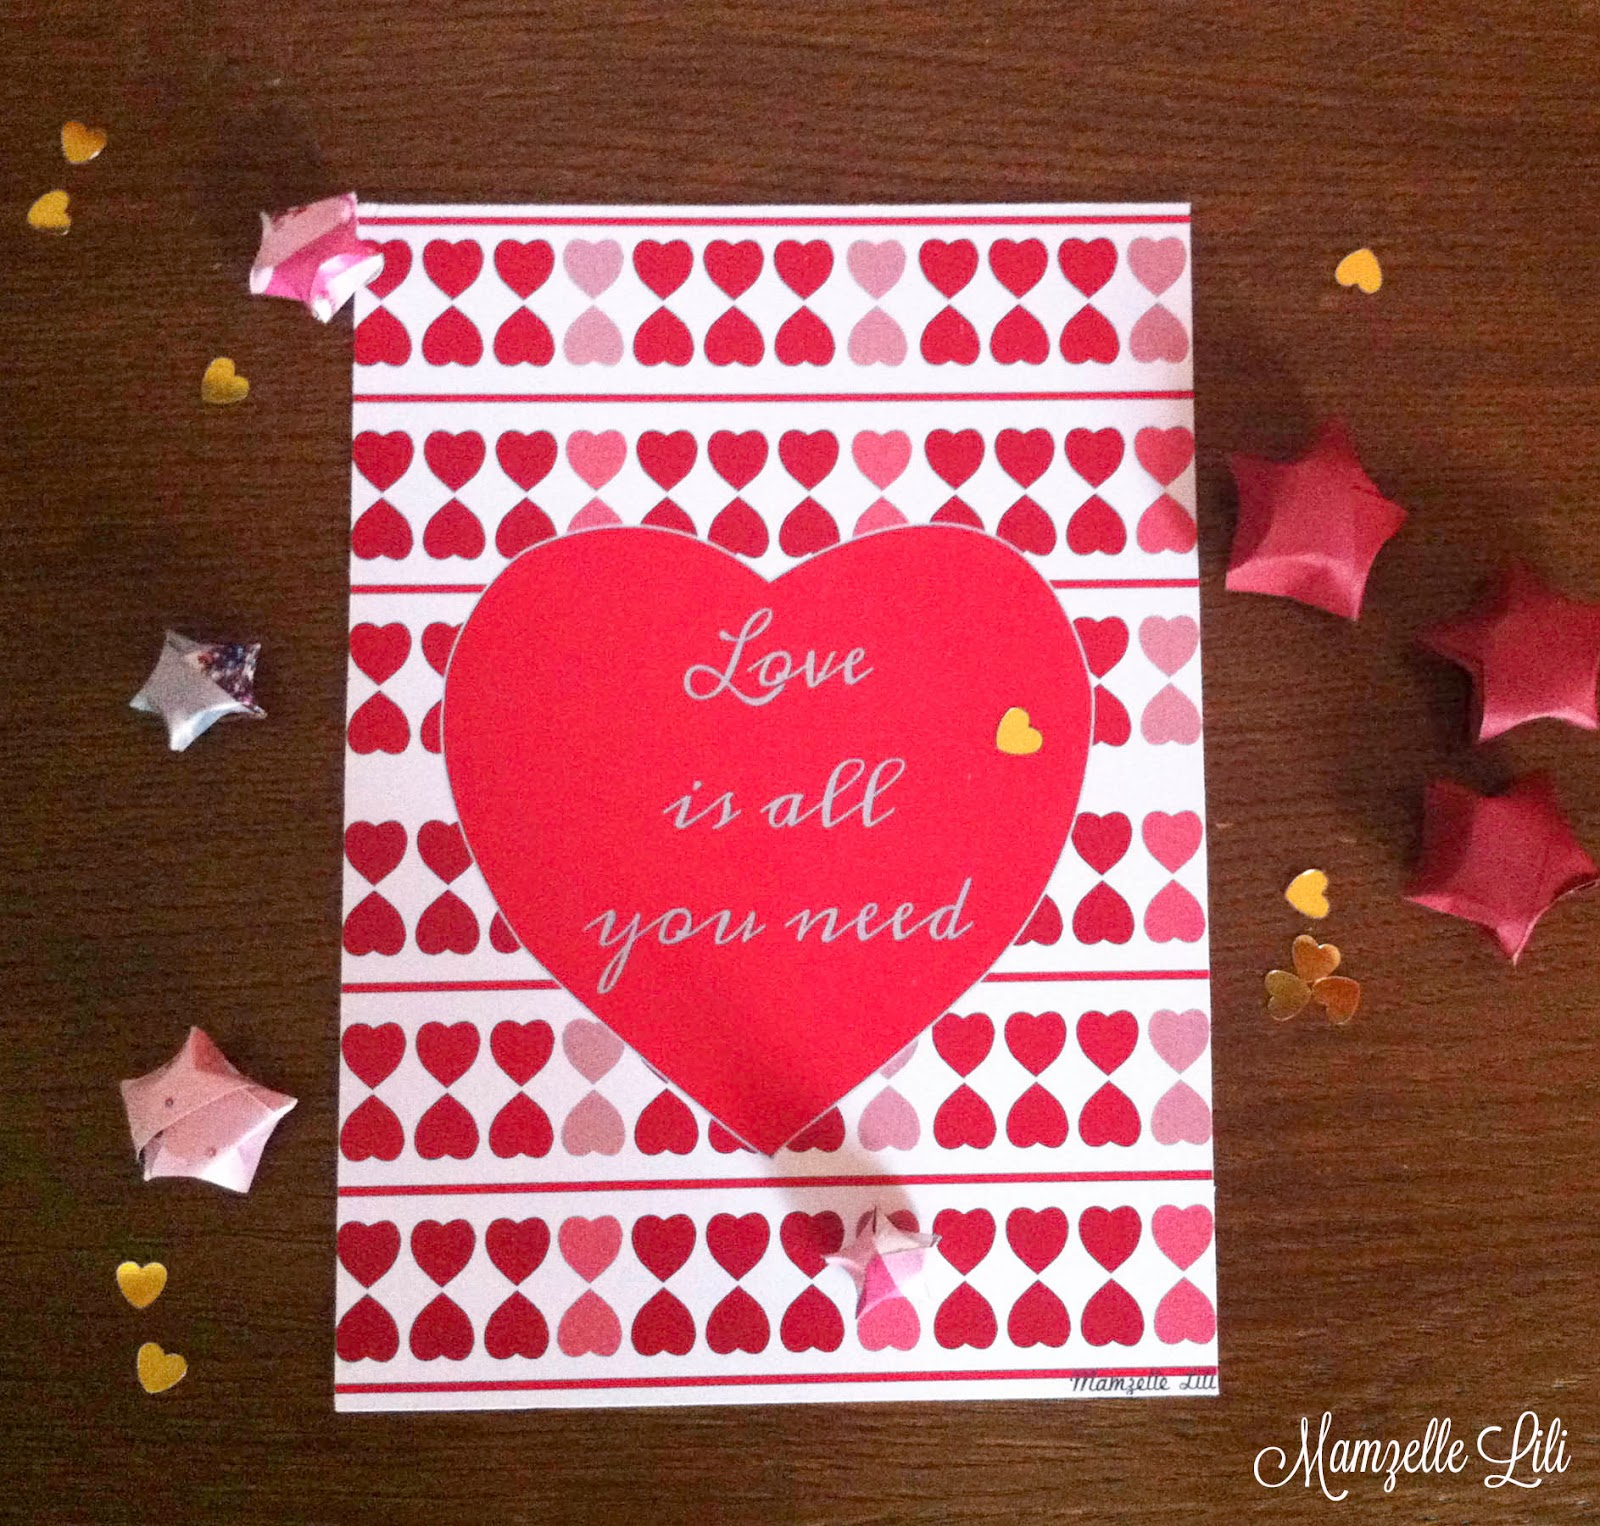 "love cards ""love is all you need""  cartes à imprimer pour dire je t'aime"